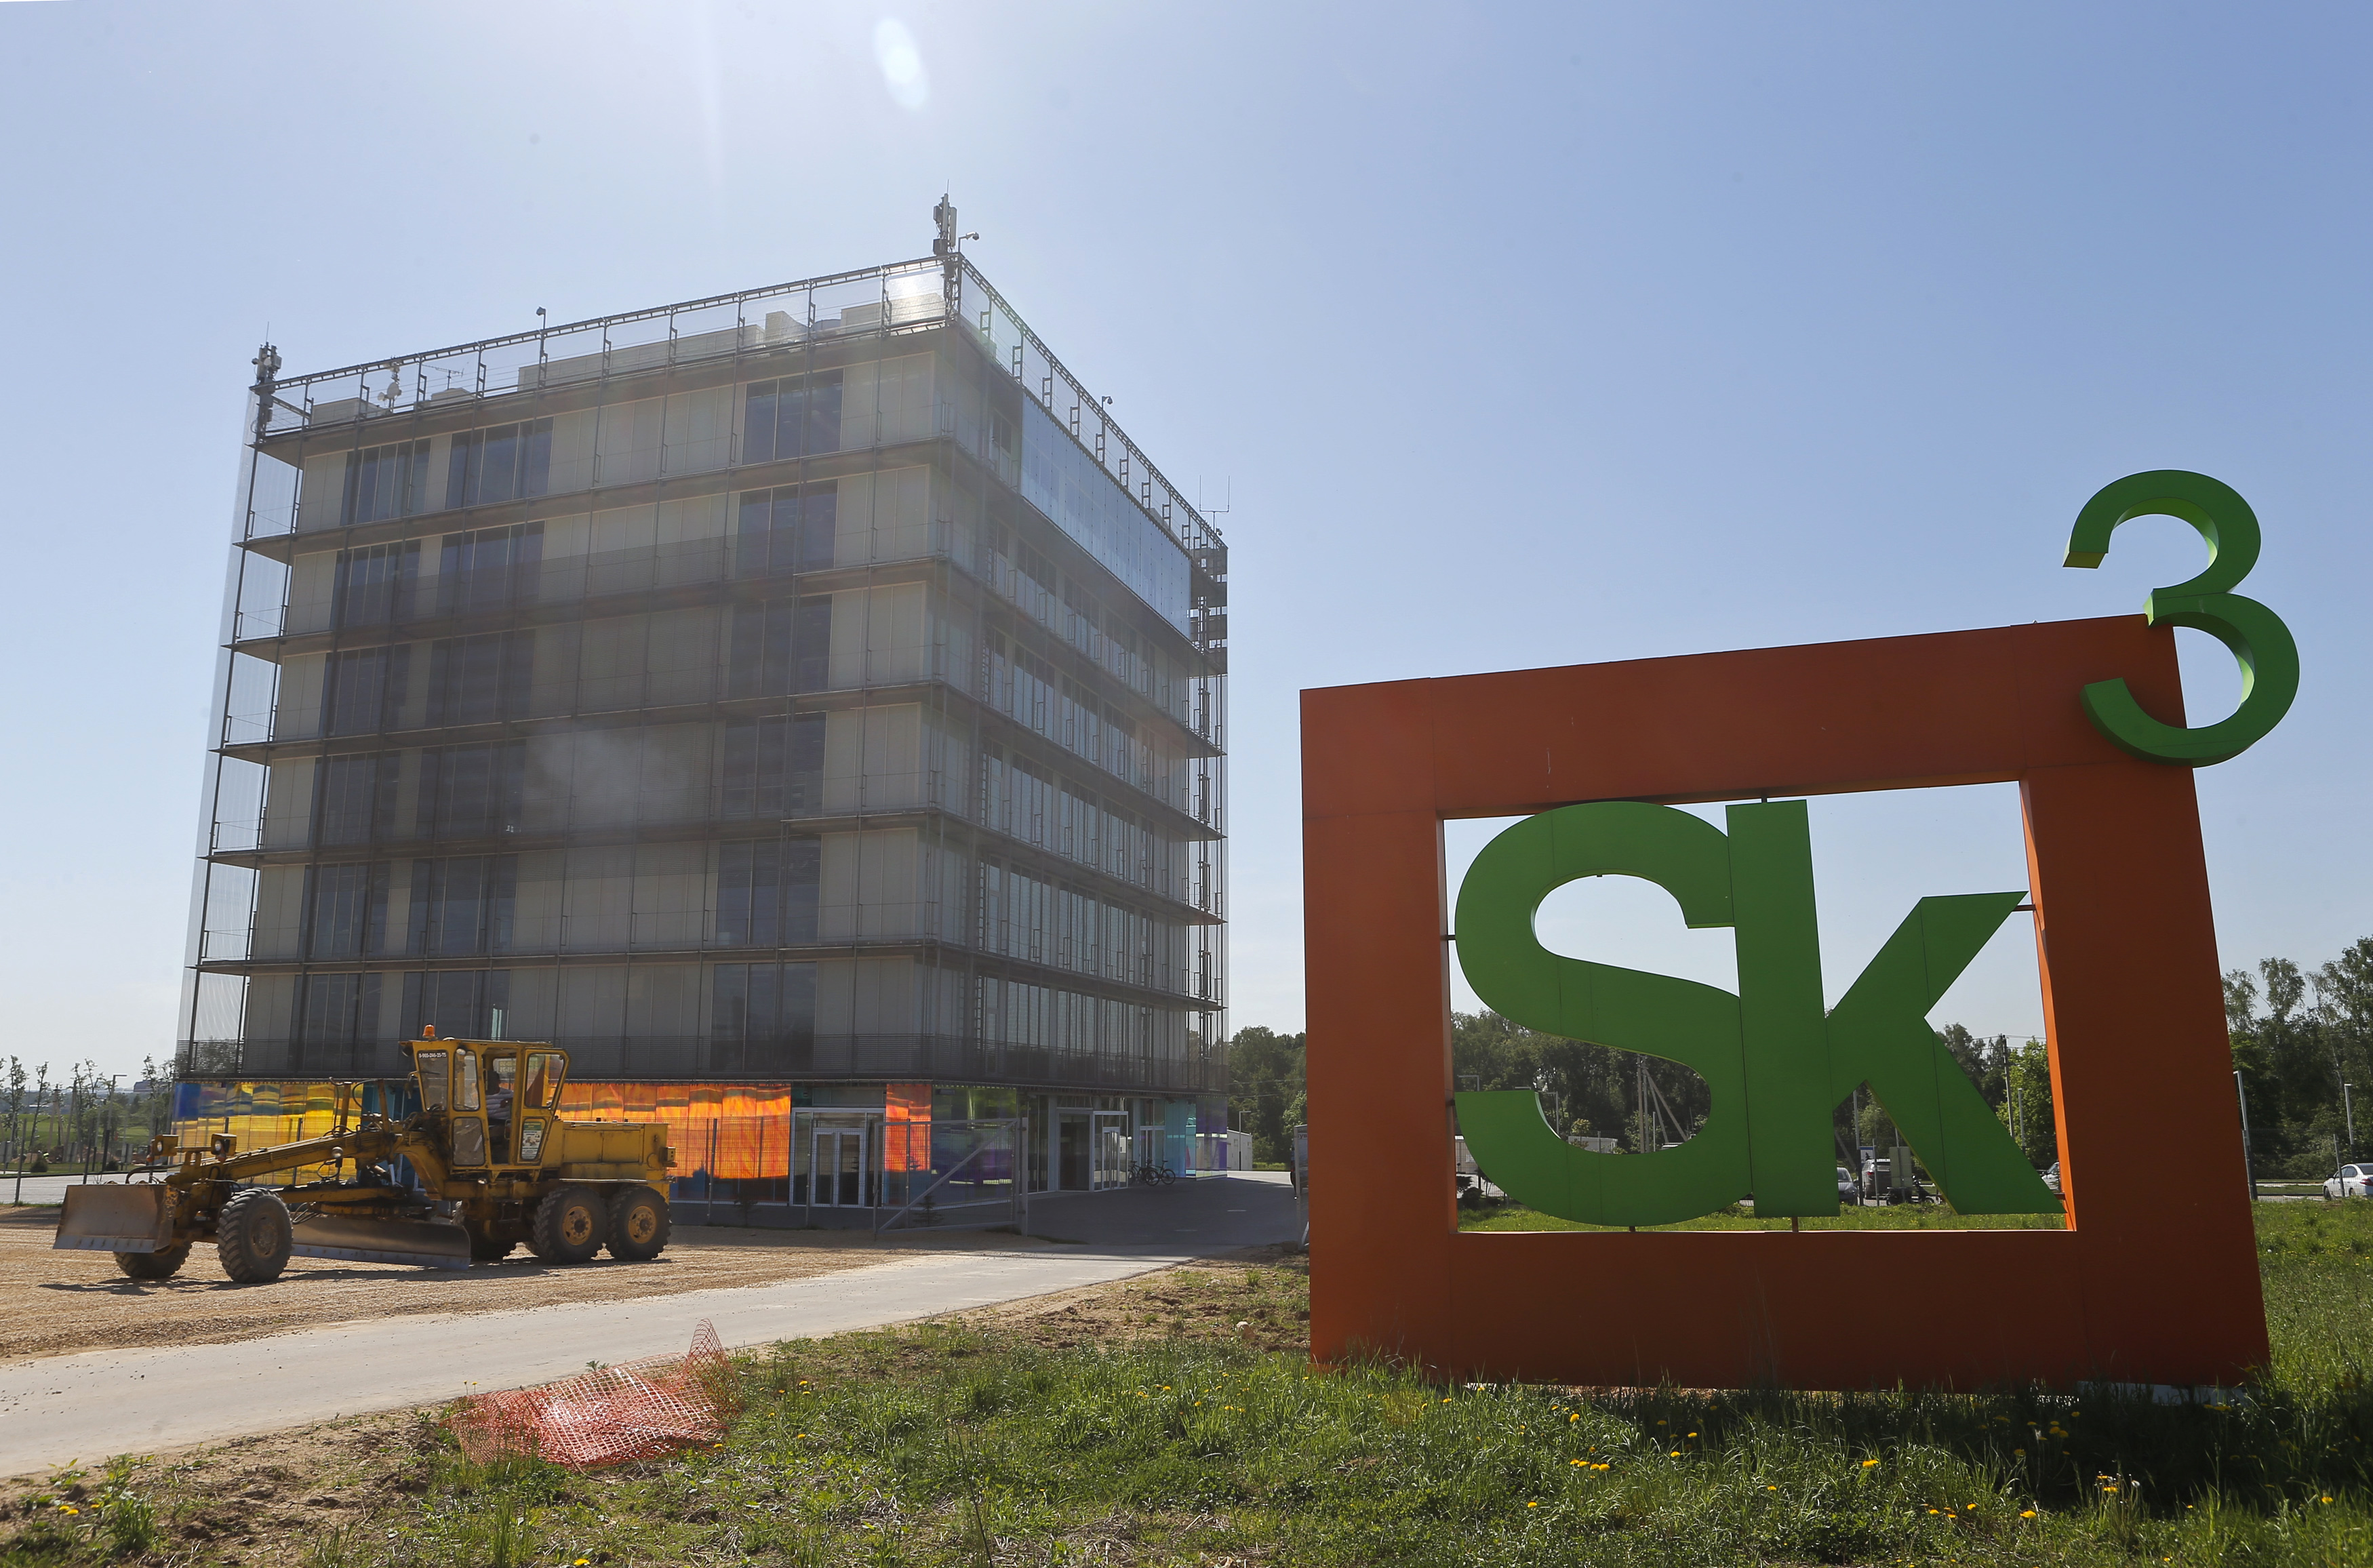 An exterior view shows the Skolkovo Hypercube at the Skolkovo Innovation Centre on the outskirts of Moscow